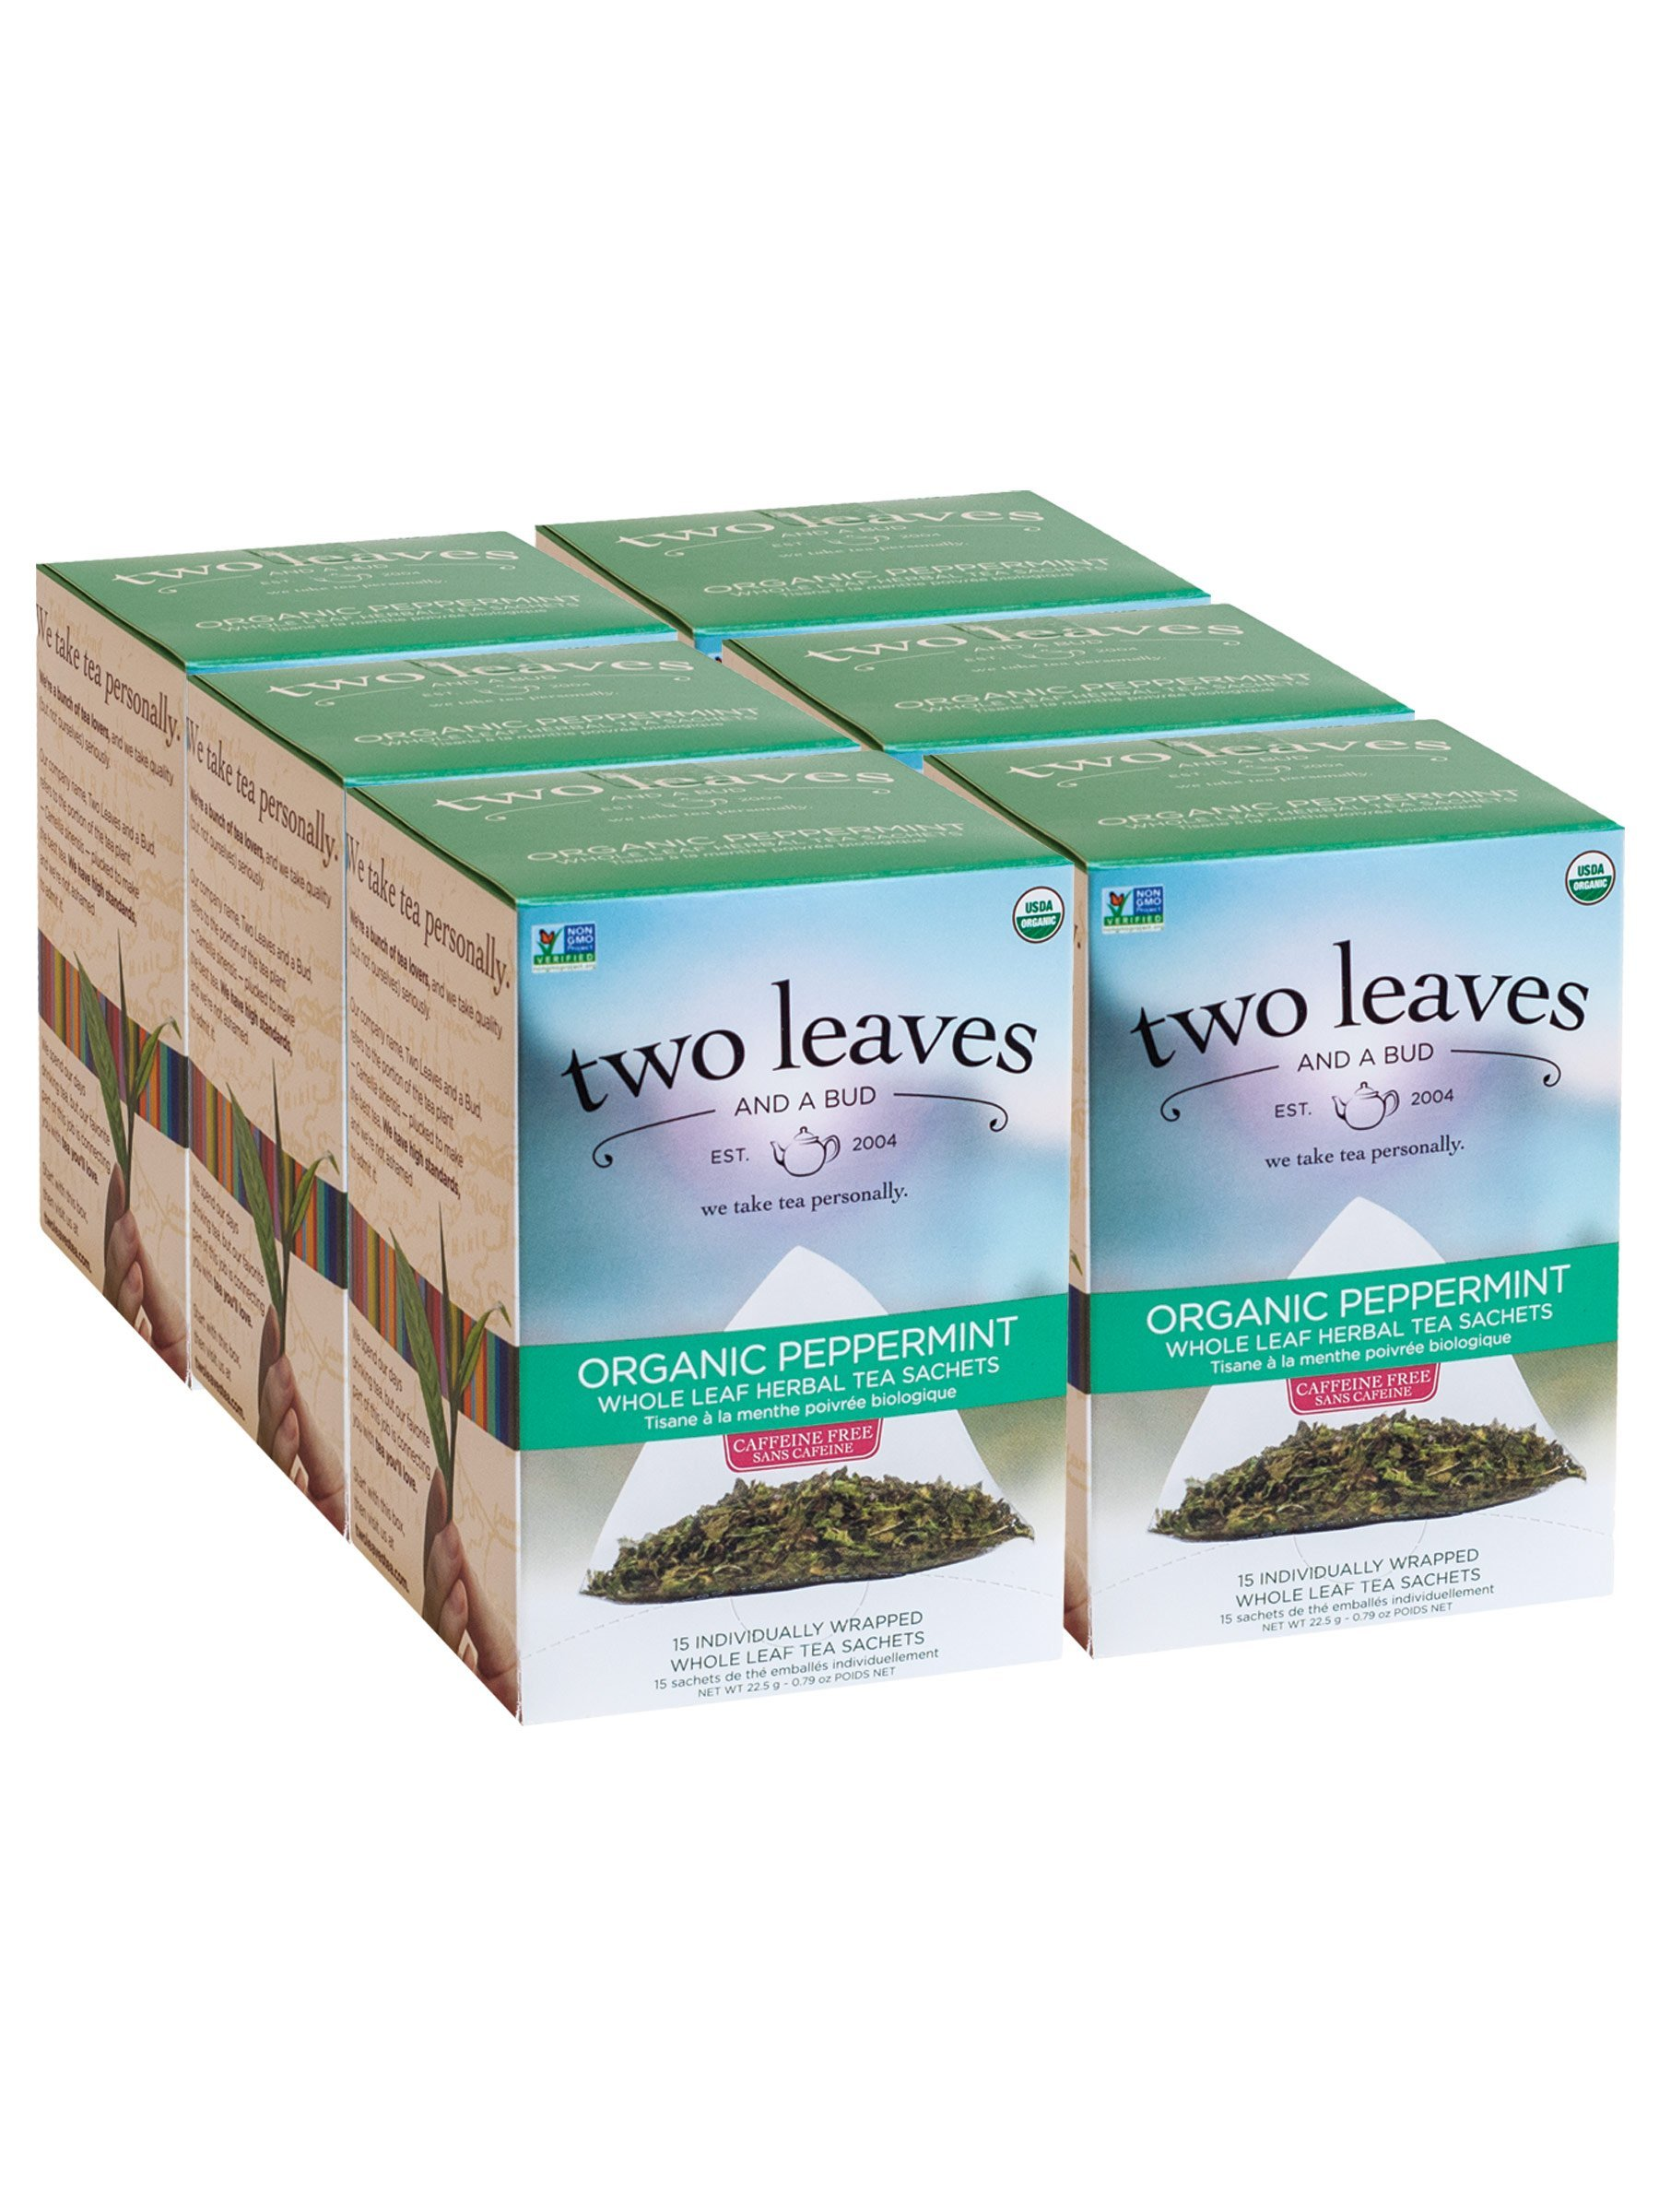 Two Leaves and a Bud Organic Peppermint Herbal Tea Bags, 15 Count (Pack of 6) Organic Whole Leaf Herbal Tea in Pyramid Sachet Bags, Delicious Hot or Iced with Milk or Sugar or Honey or Plain